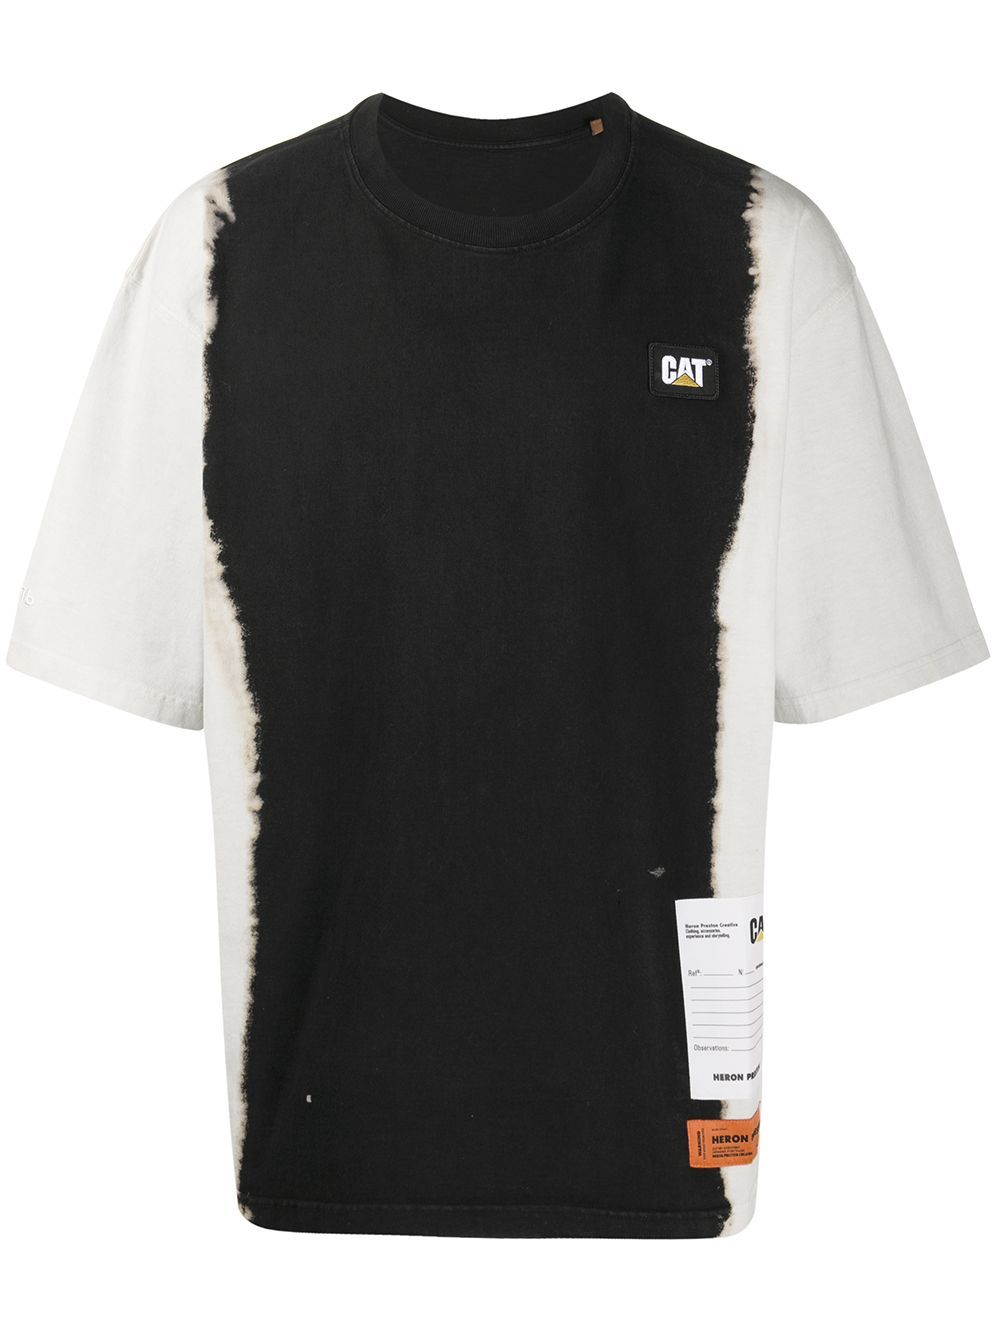 HERON PRESTON Oversized Tie Dye T-shirt Black/White - Maison De Fashion